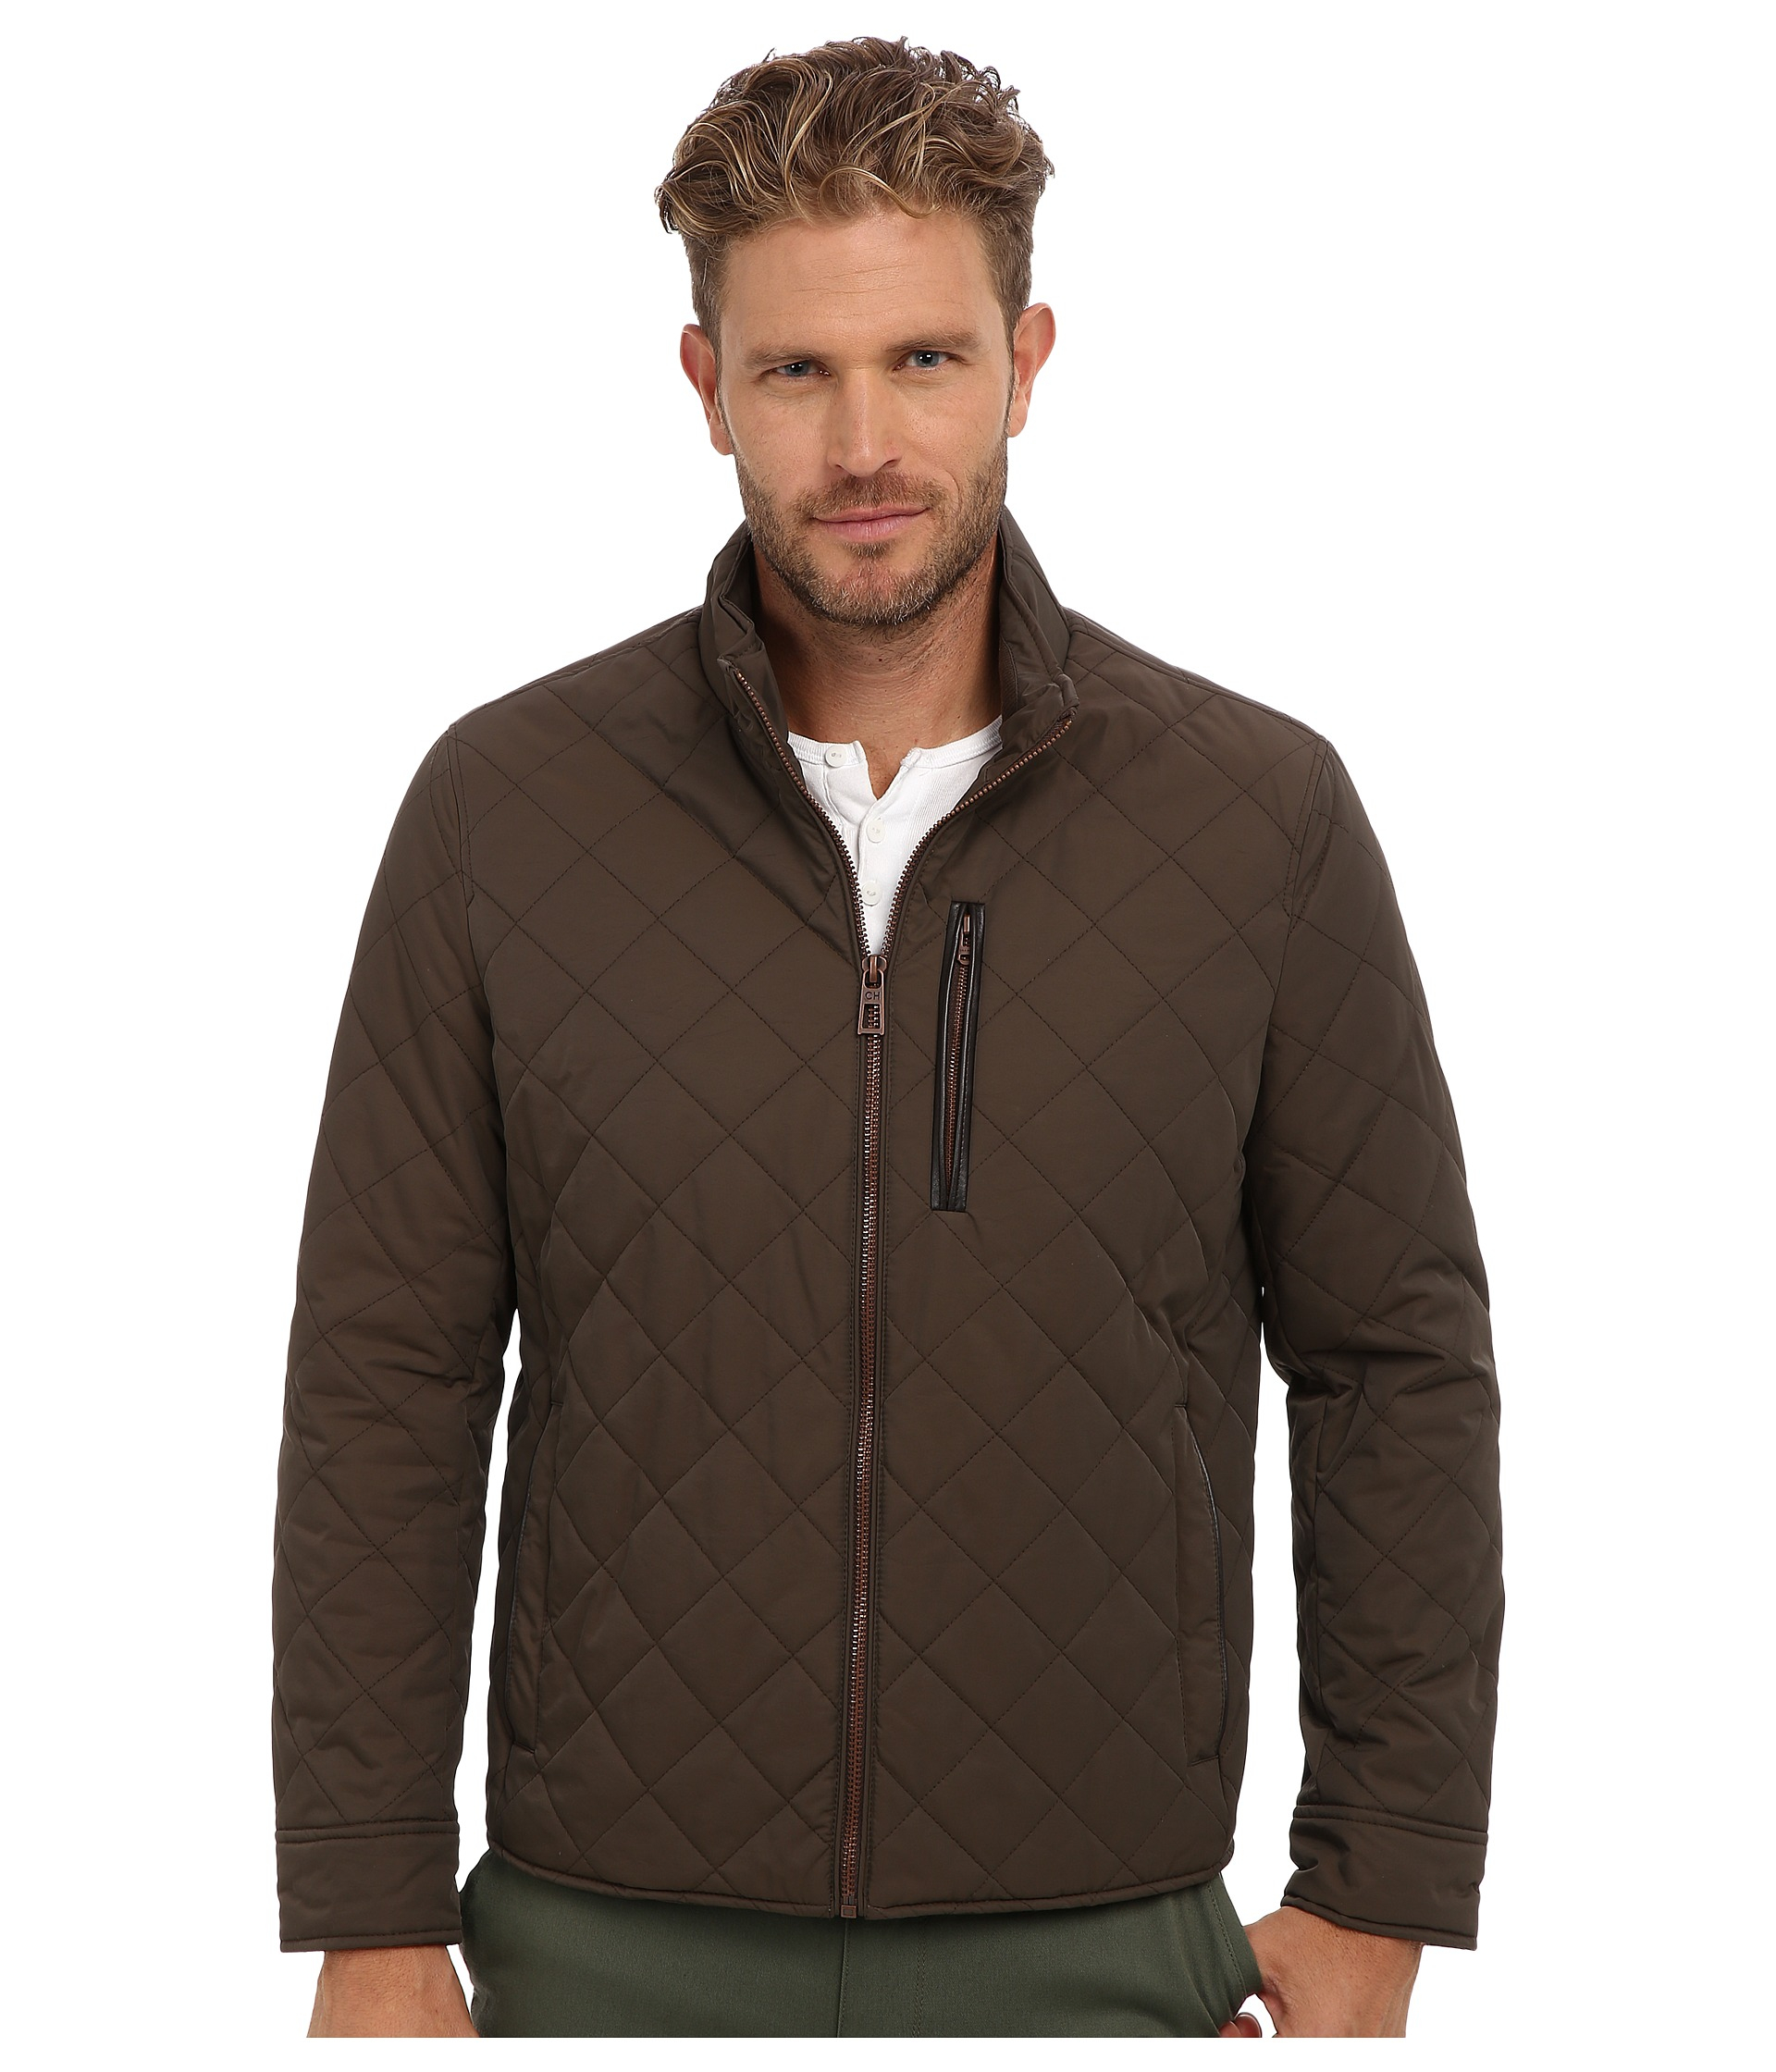 Lyst - Cole haan Quilted Nylon Jacket in Brown for Men : mens brown quilted jacket - Adamdwight.com